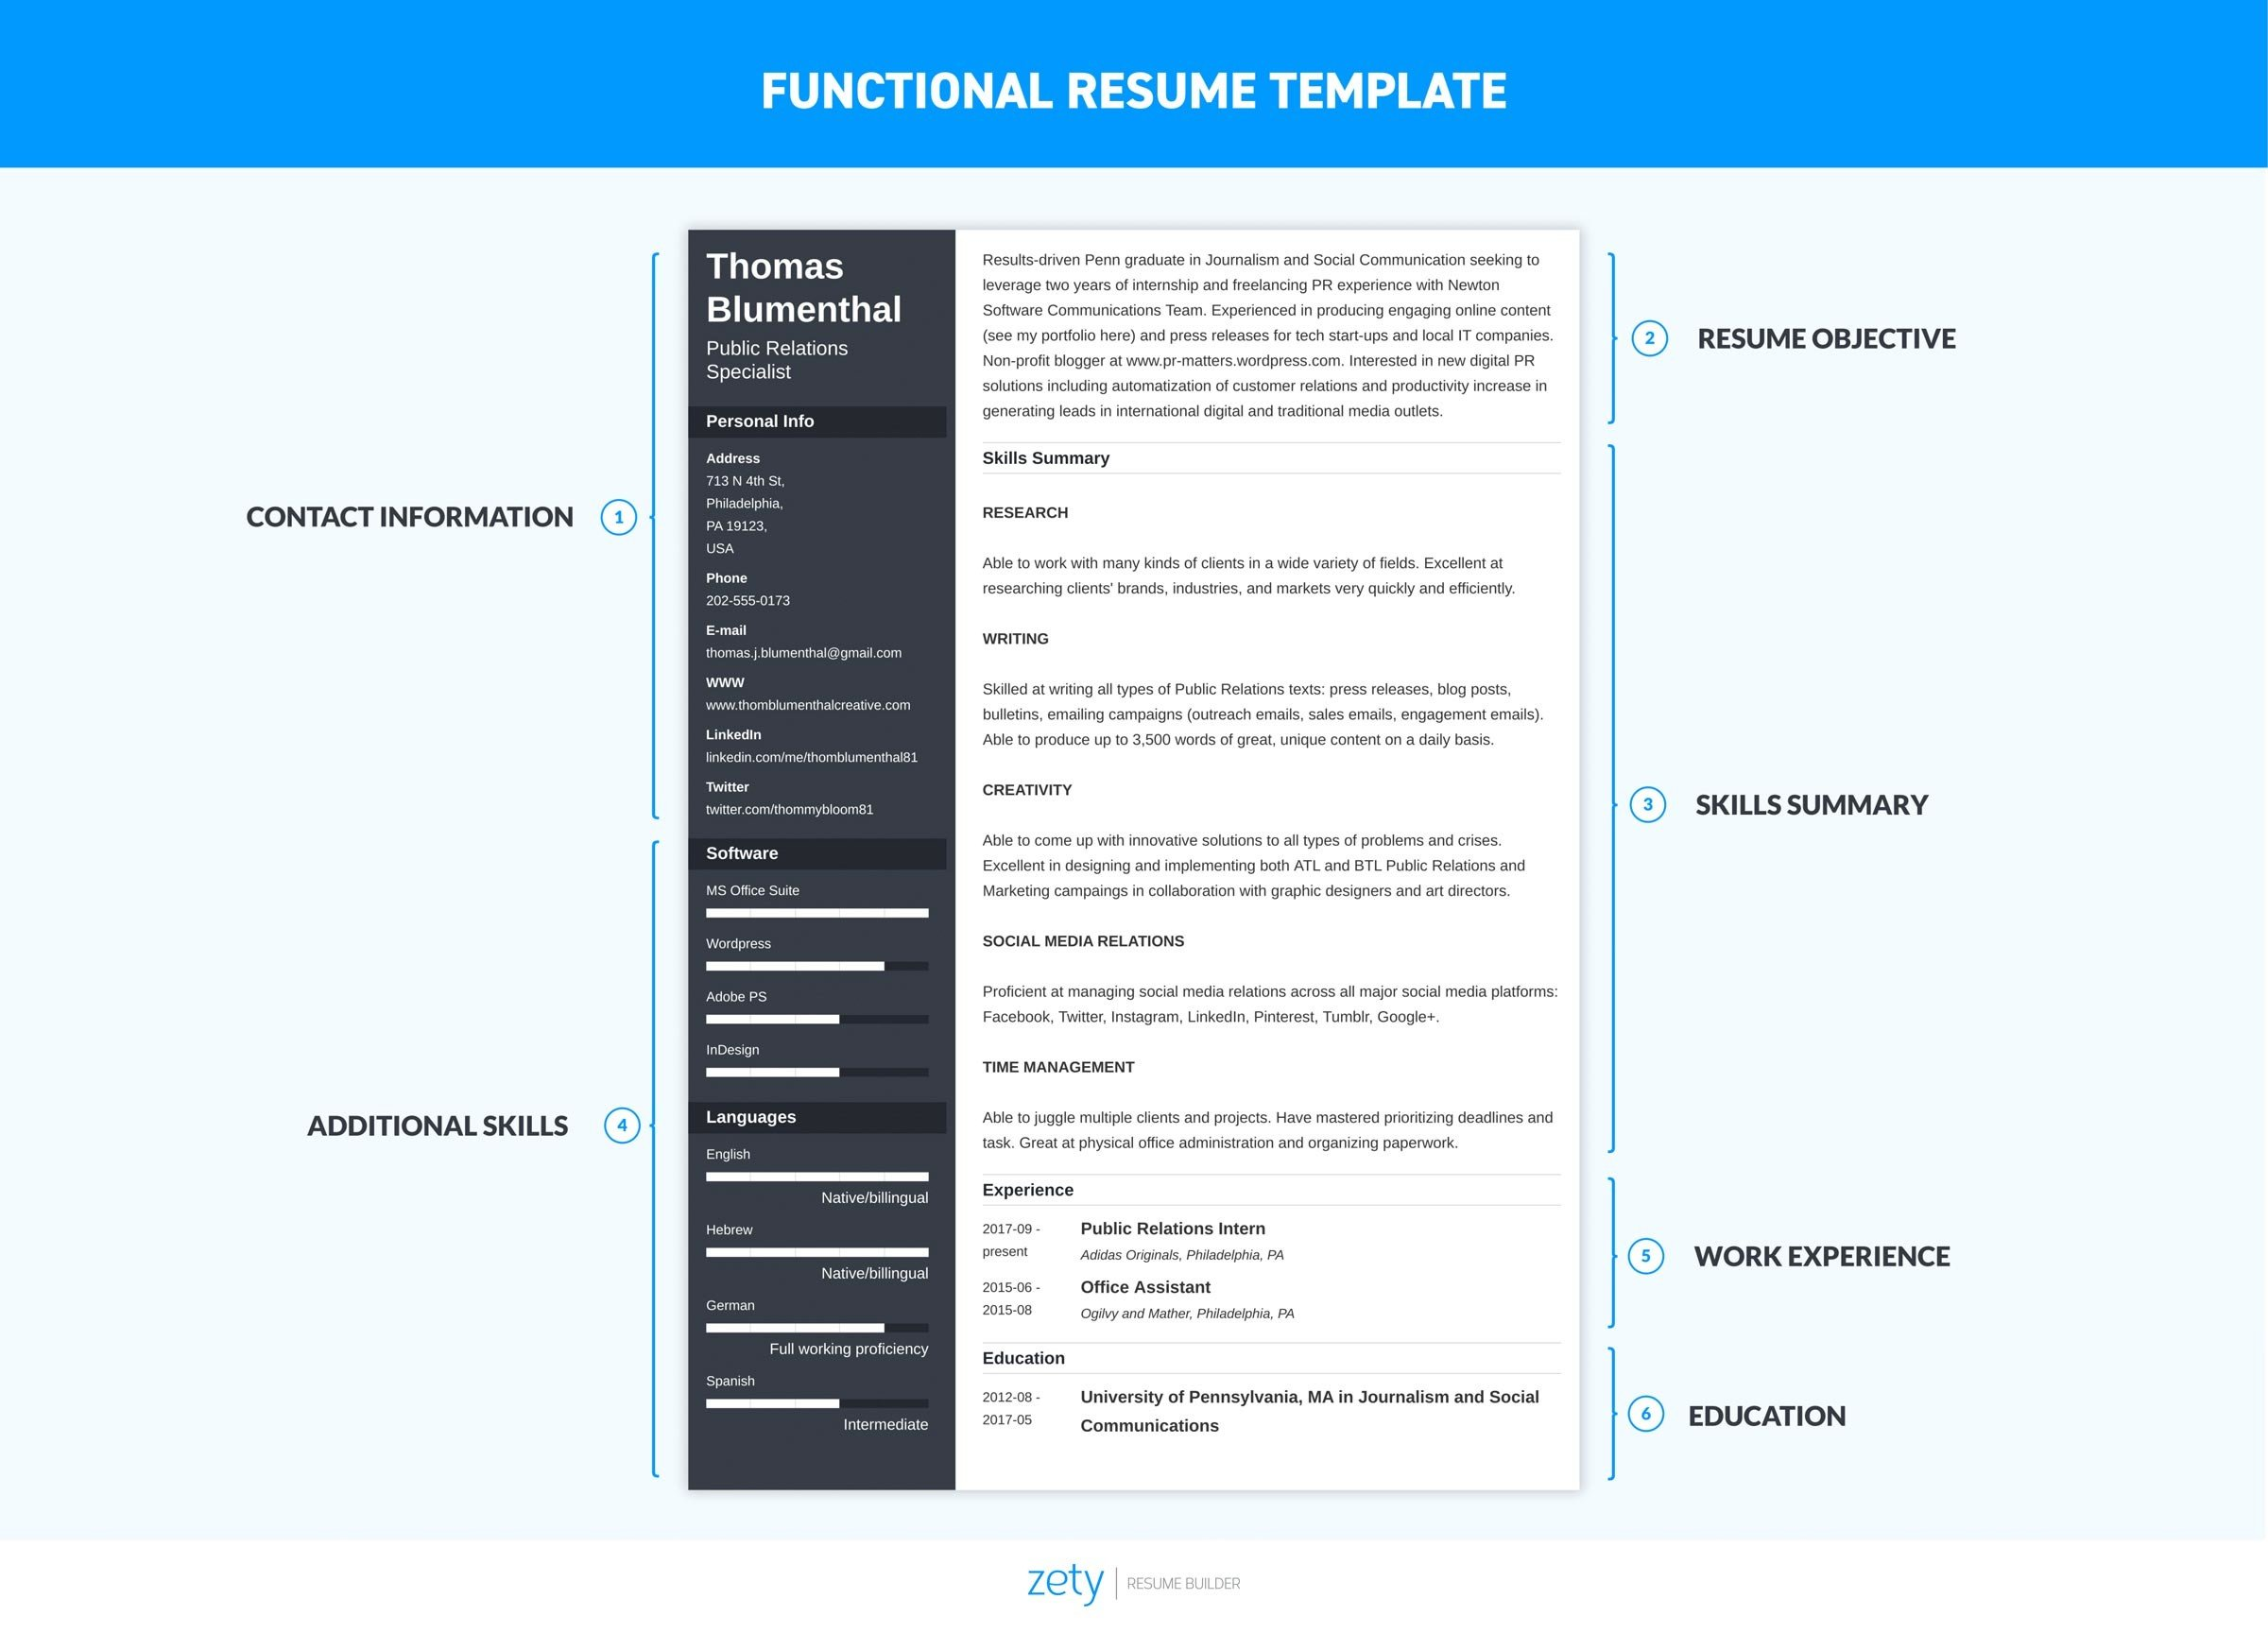 functional resume examples skills based templates example template without dates rabbit Resume Functional Resume Example